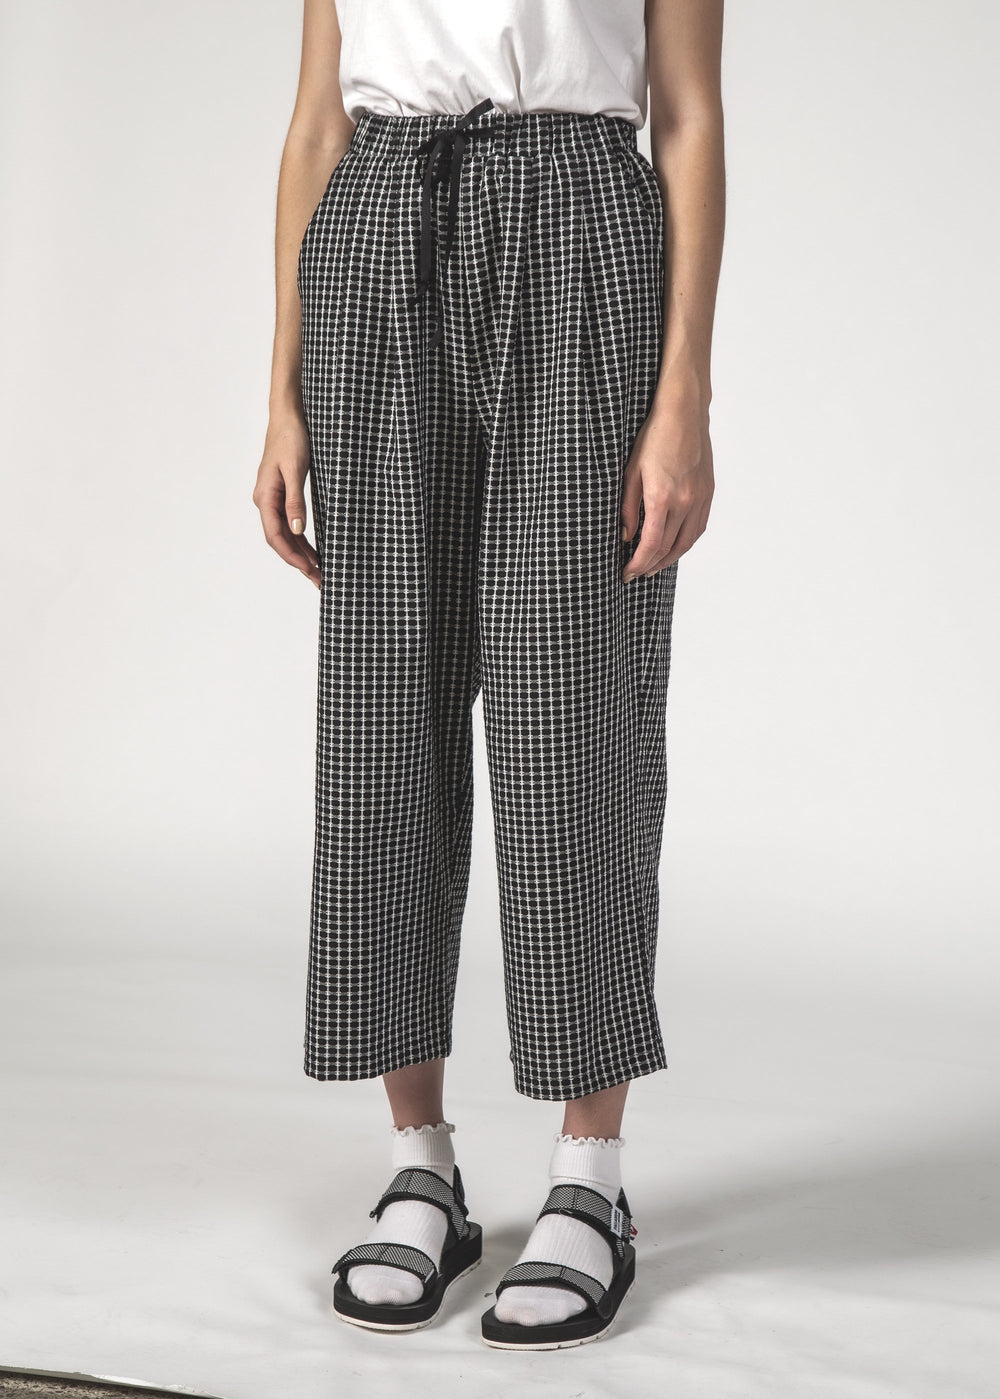 SALE - CRUISE PANT - Black Crosshatch